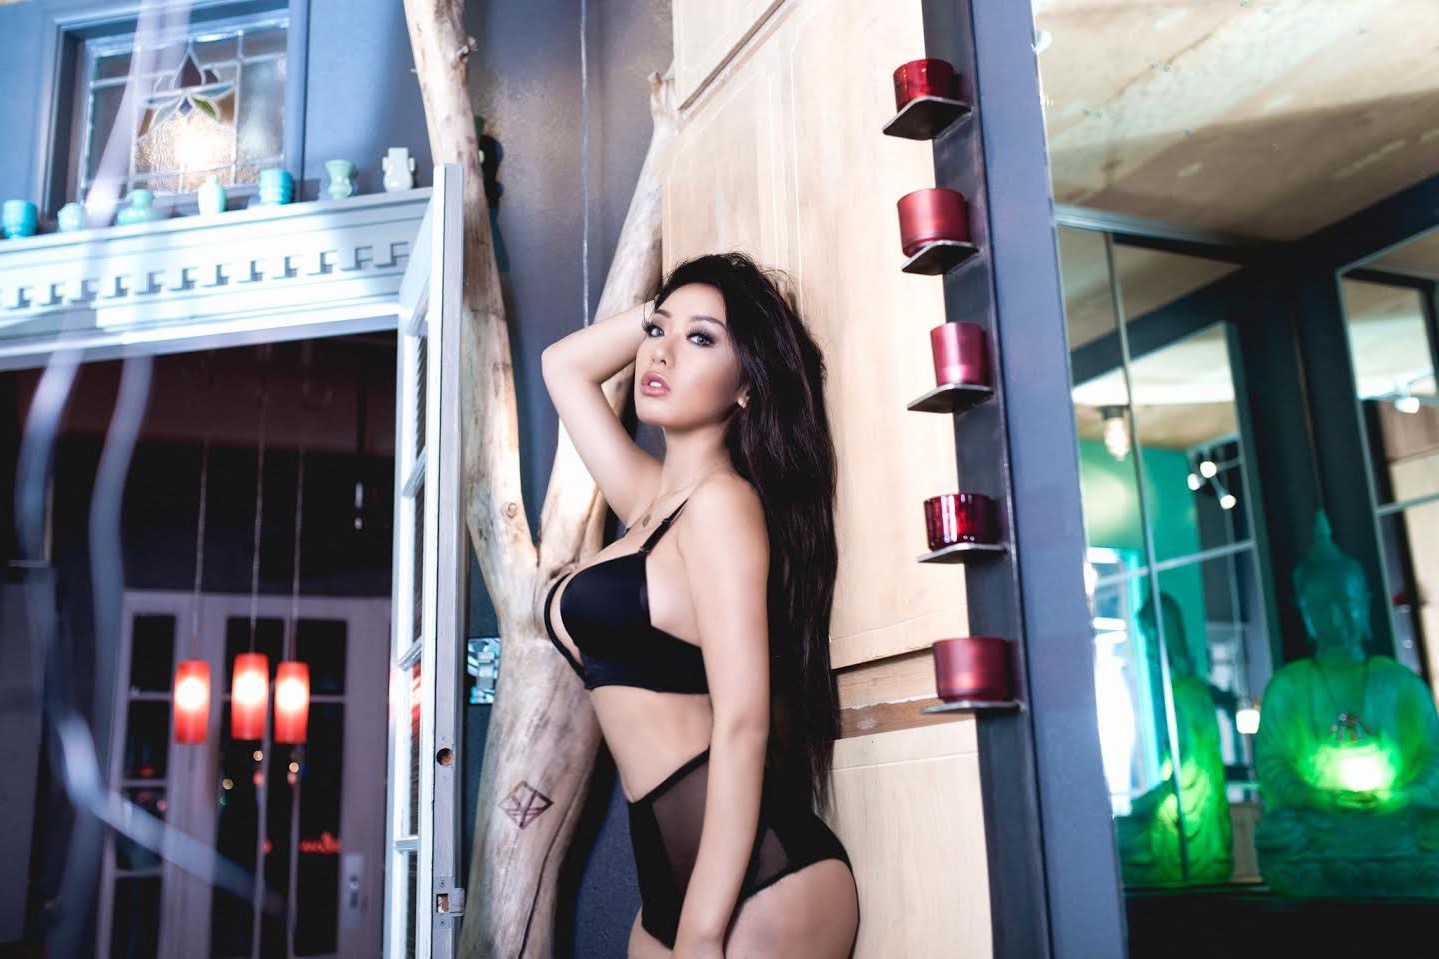 asian single men in lynn center Meet single filipina women & men online at filipino dating 32k likes offers members with 100% free service so all.